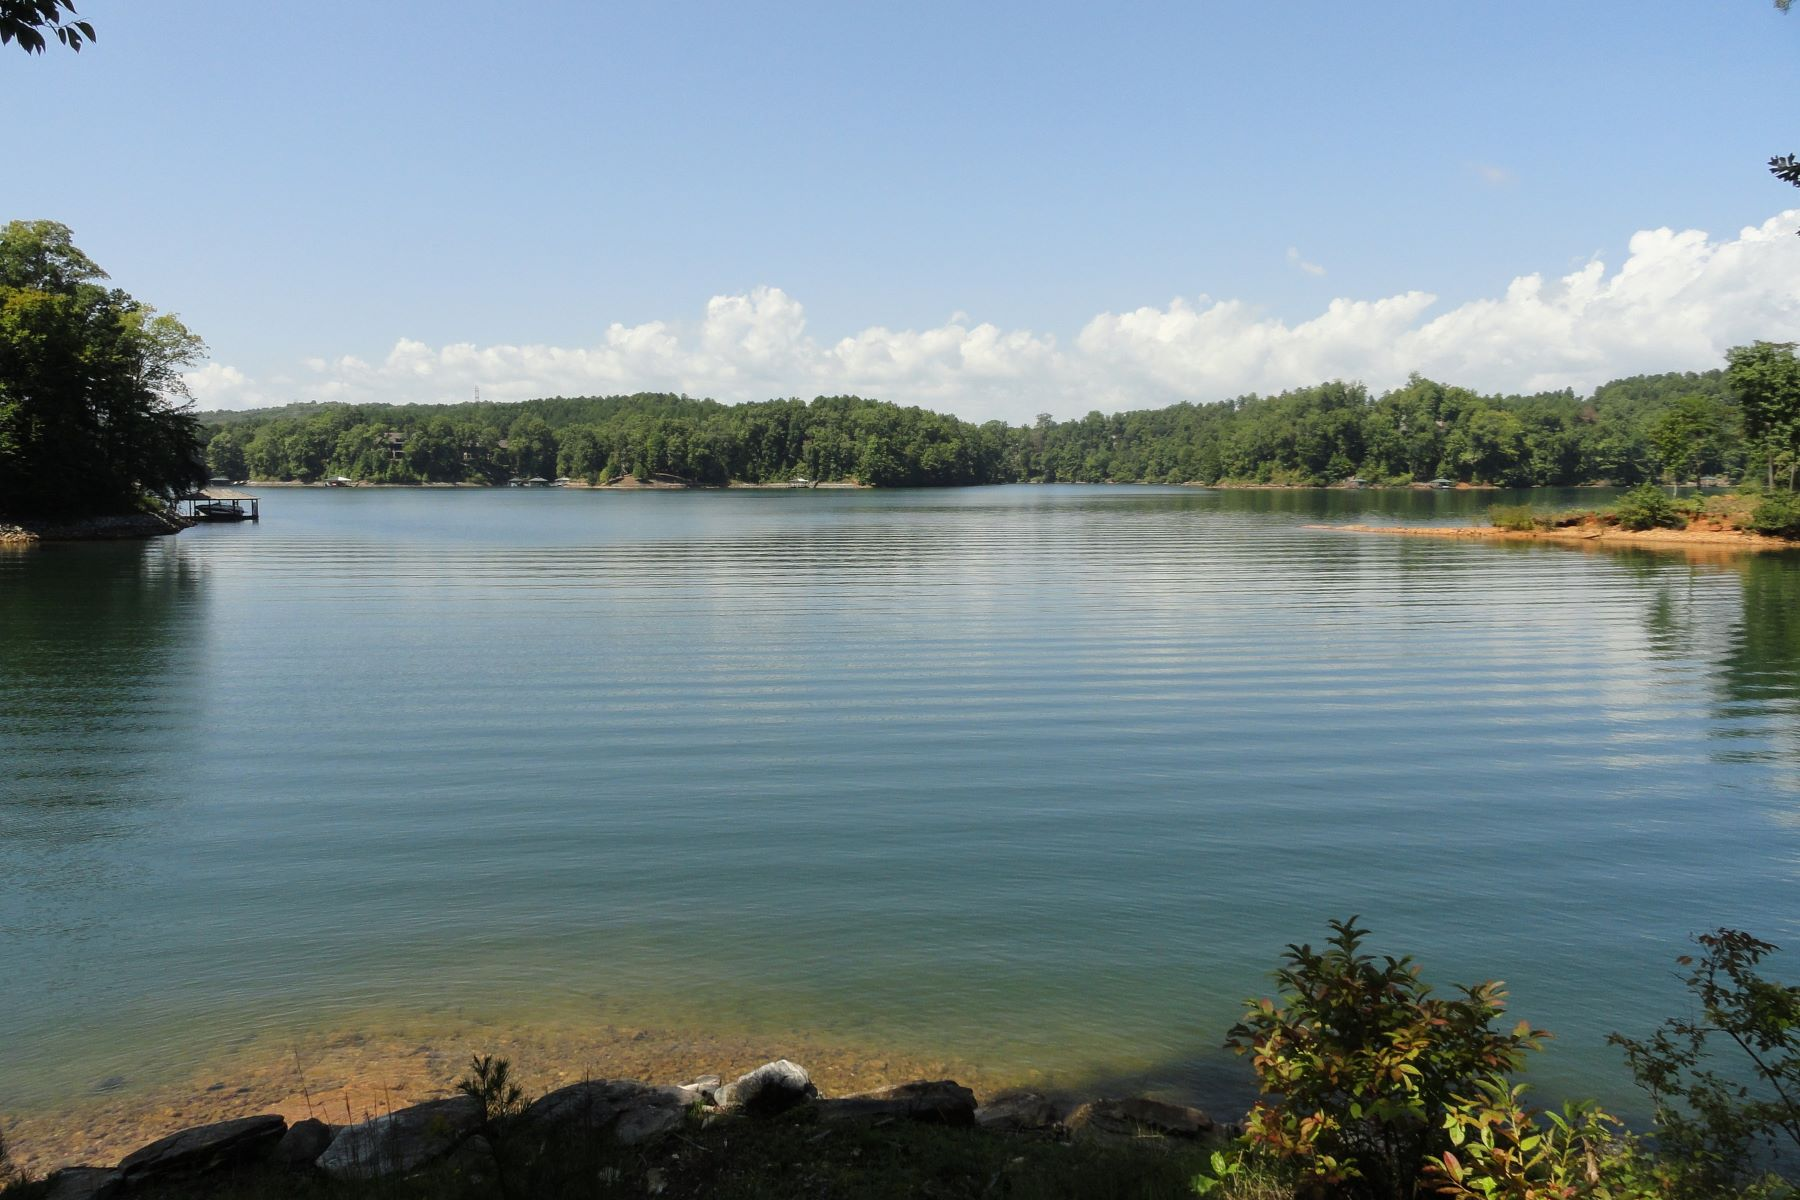 Земля для того Продажа на Estate Size Home Site in The Reserve at Lake Keowee RES F75, The Reserve At Lake Keowee, Sunset, Южная Каролина, 29685 Соединенные Штаты